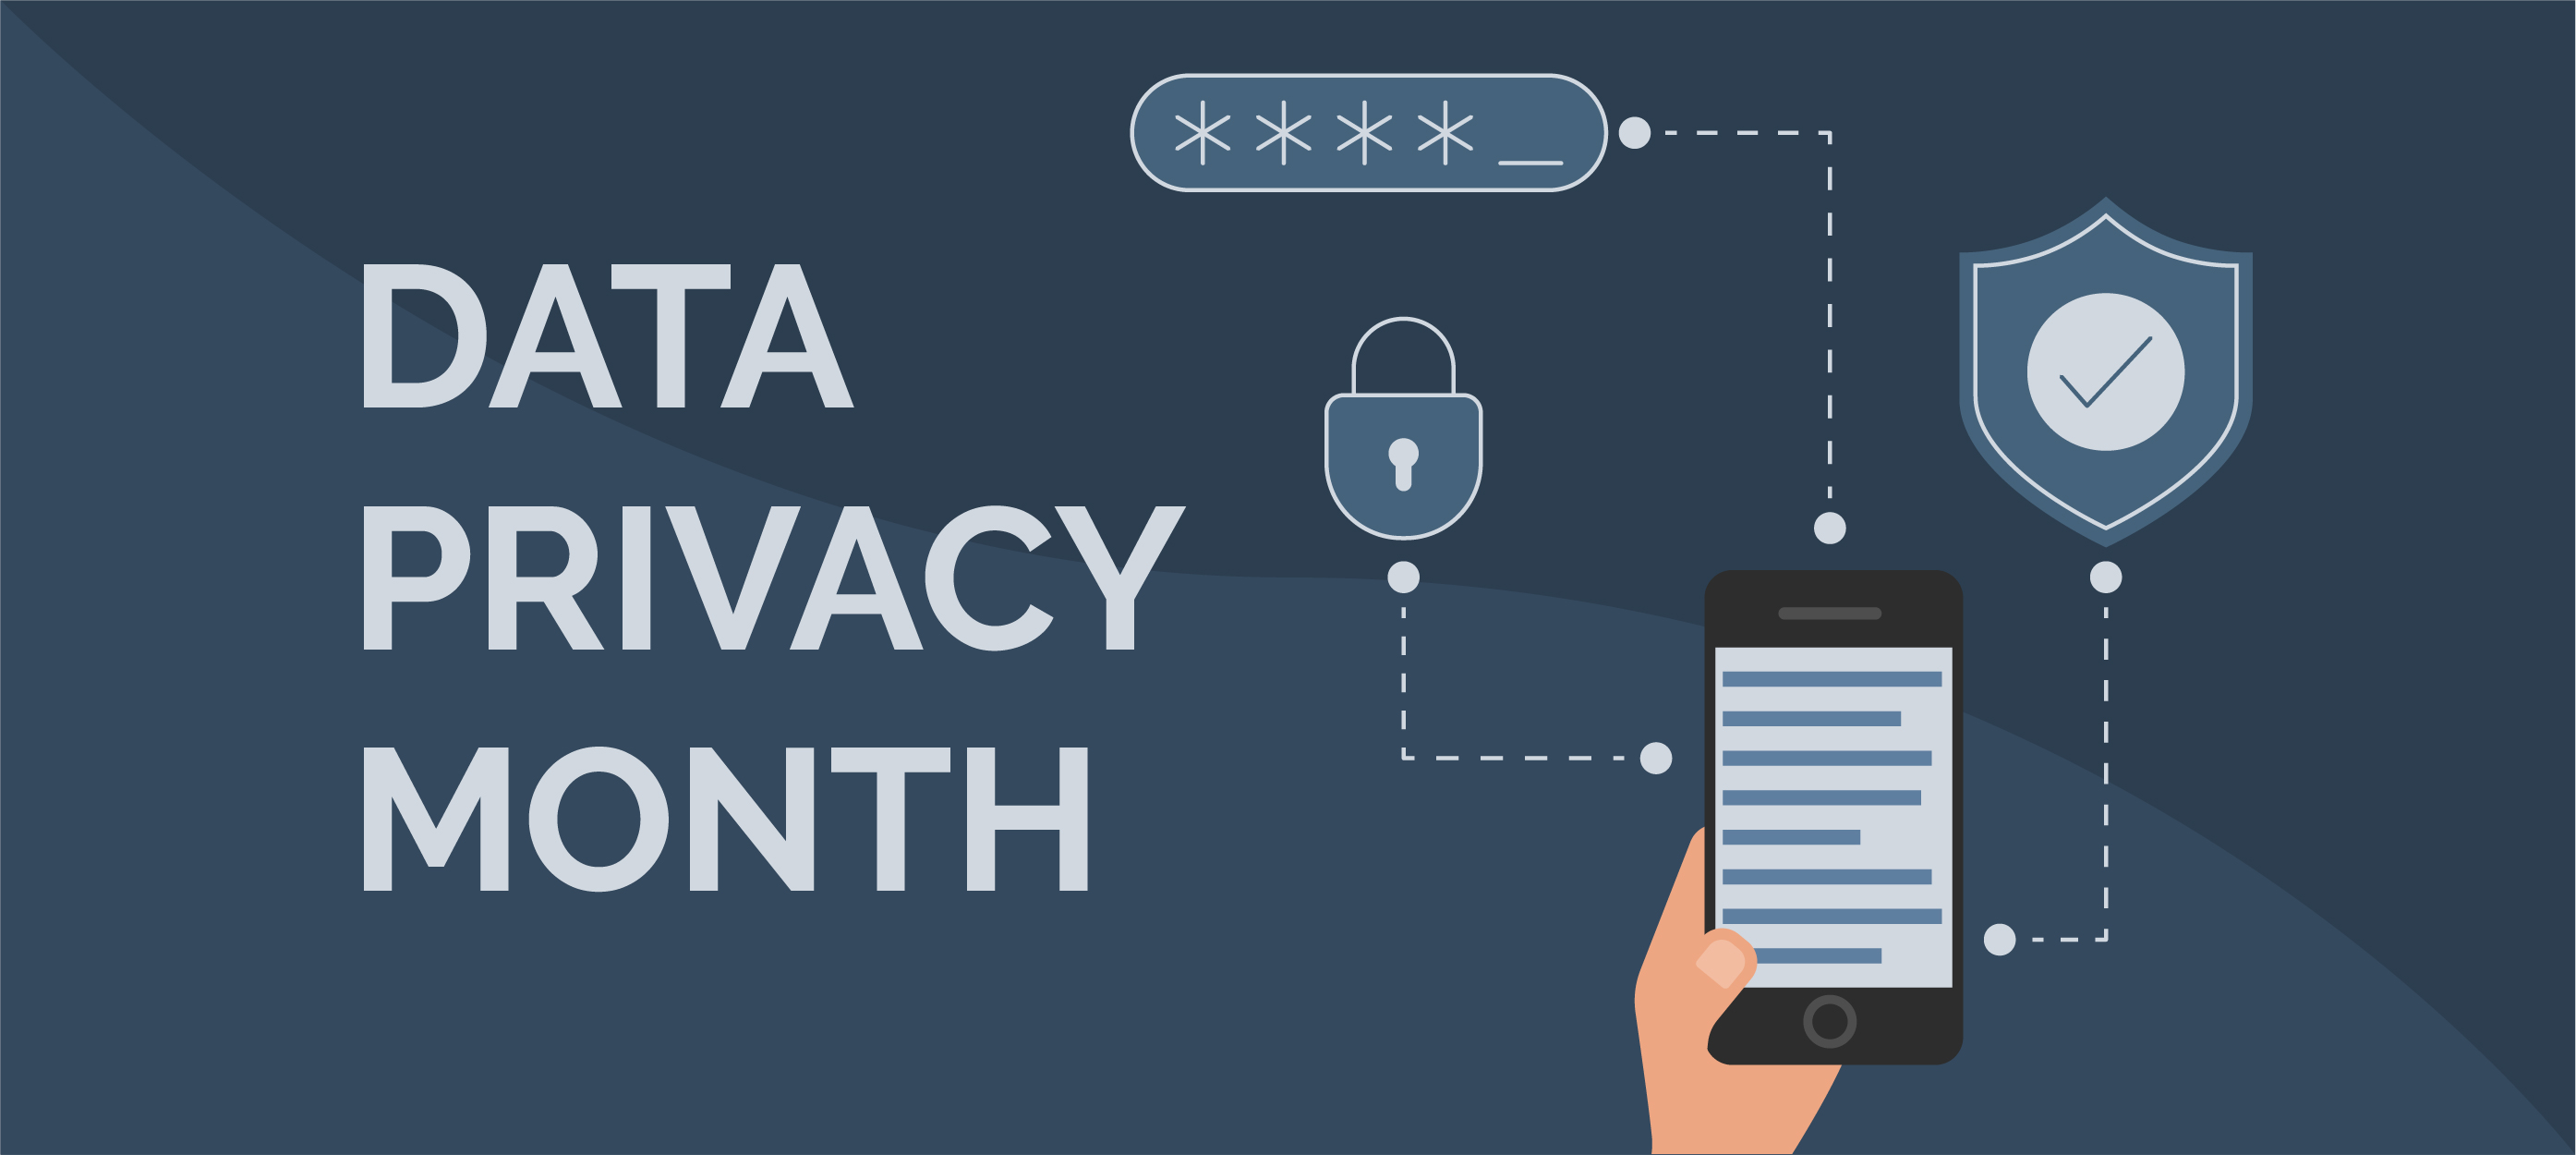 Graphic: Data Privacy Month